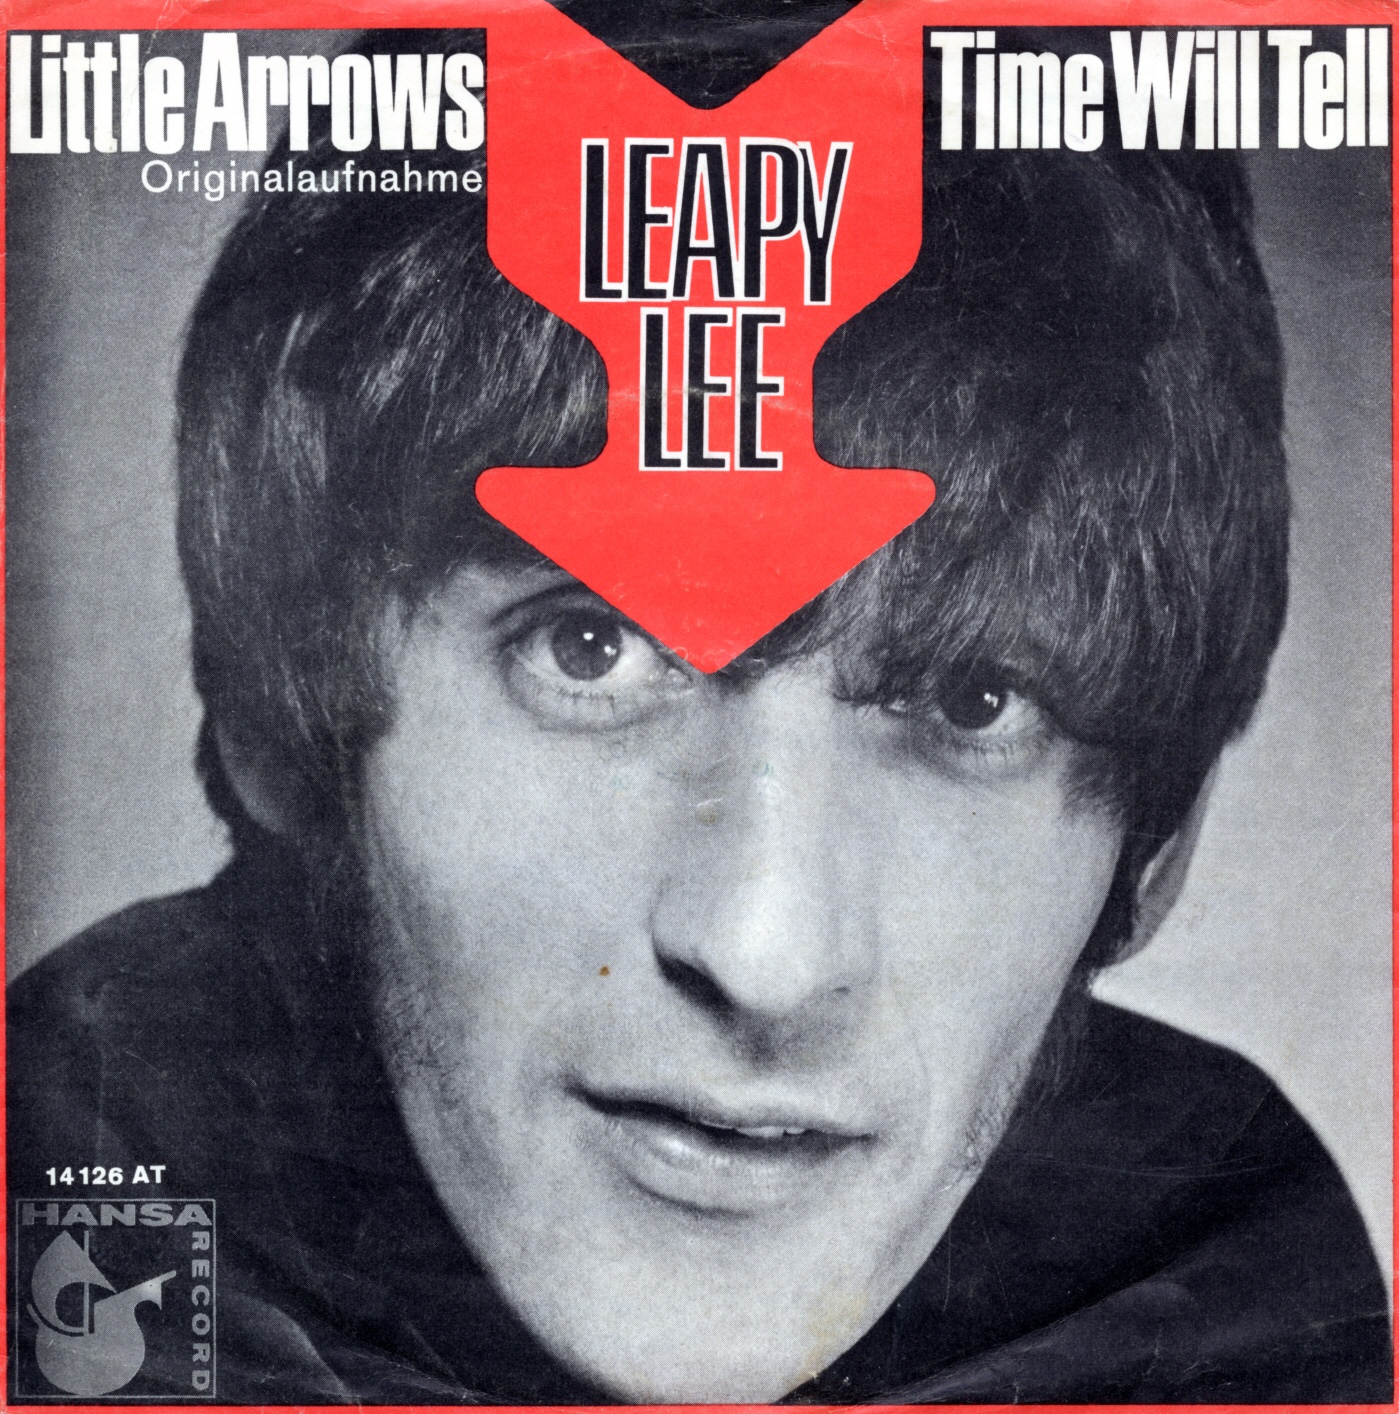 Cover: Little arrows, Leapy Lee